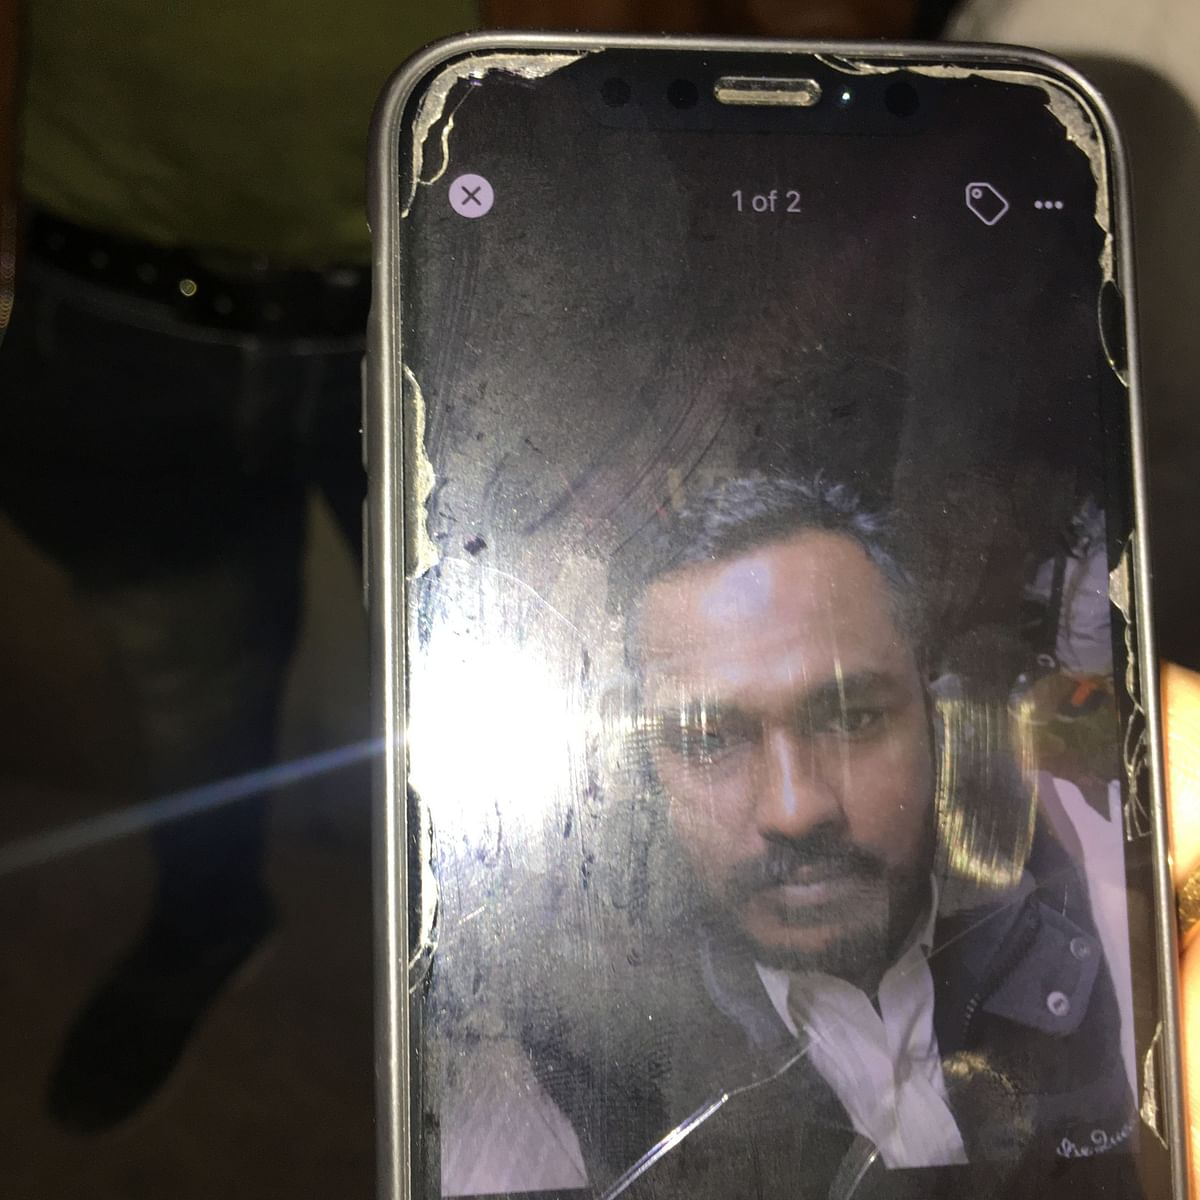 A relative showing photo of 37-year-old Imran from Moradabad who was killed in the Anaj Mandi fire accident on 8 December 2019.